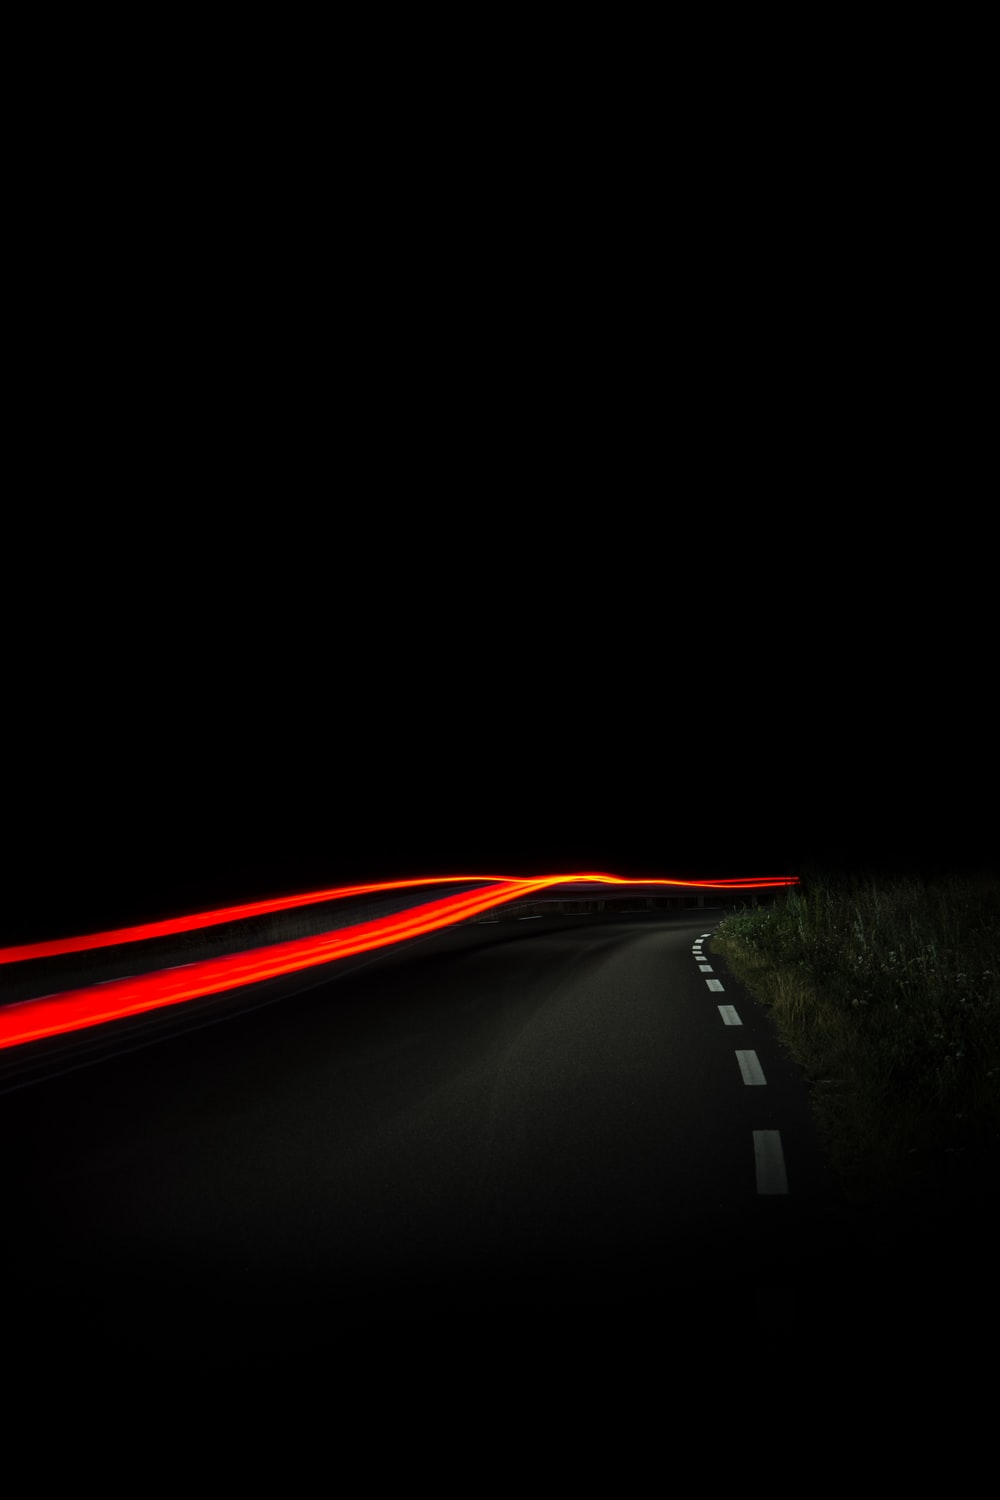 A blurry night-time shot of a road in Åsa, with red car trails